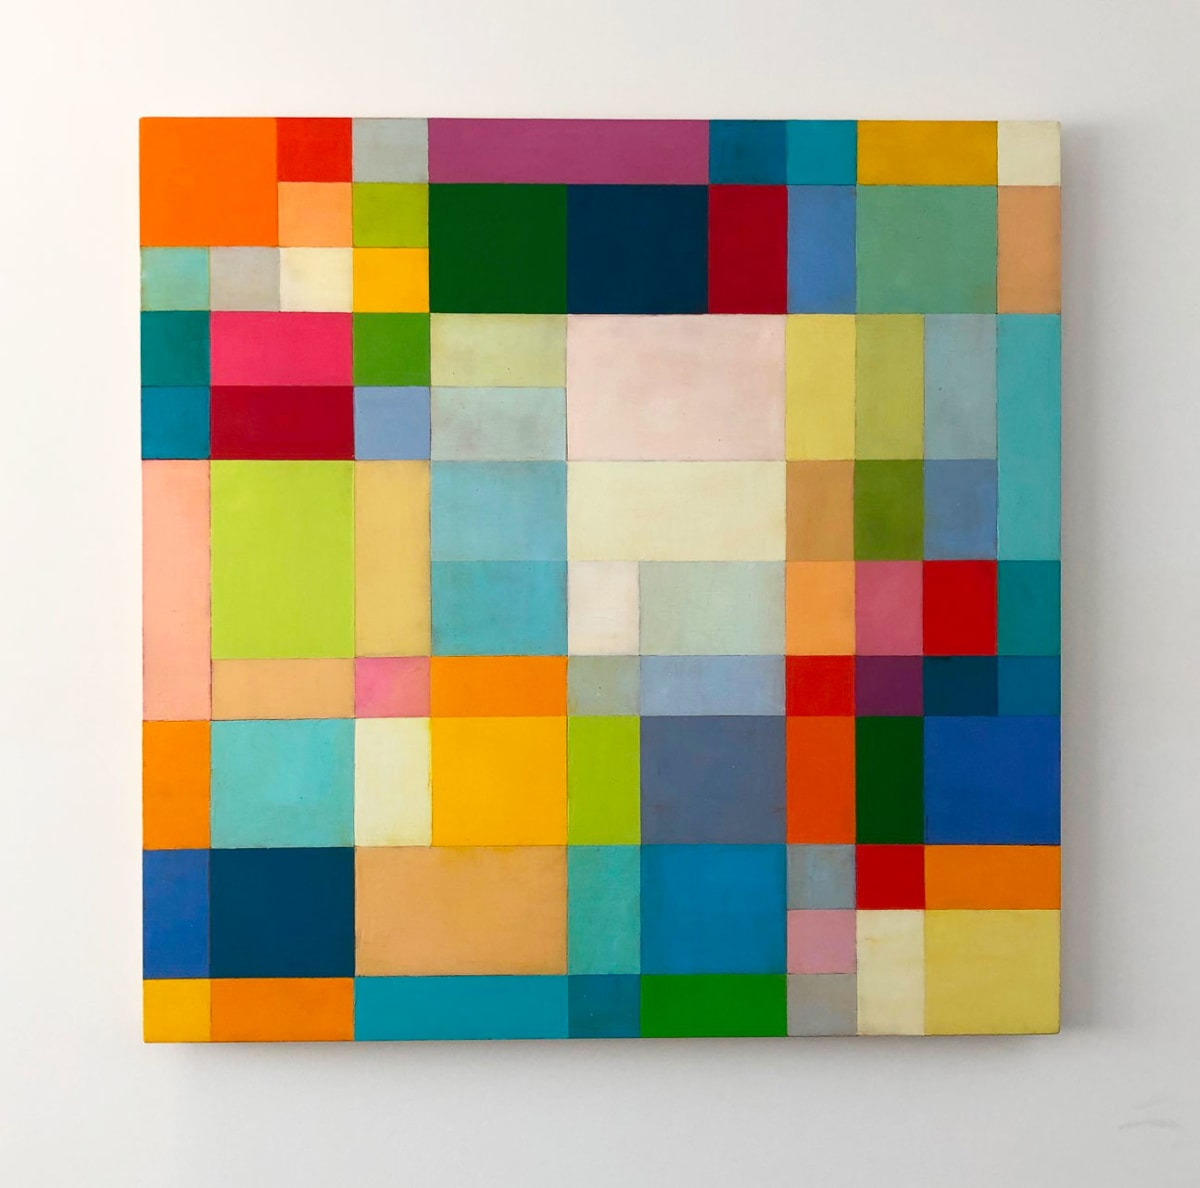 Georges MEURANT, Untitled, 2010